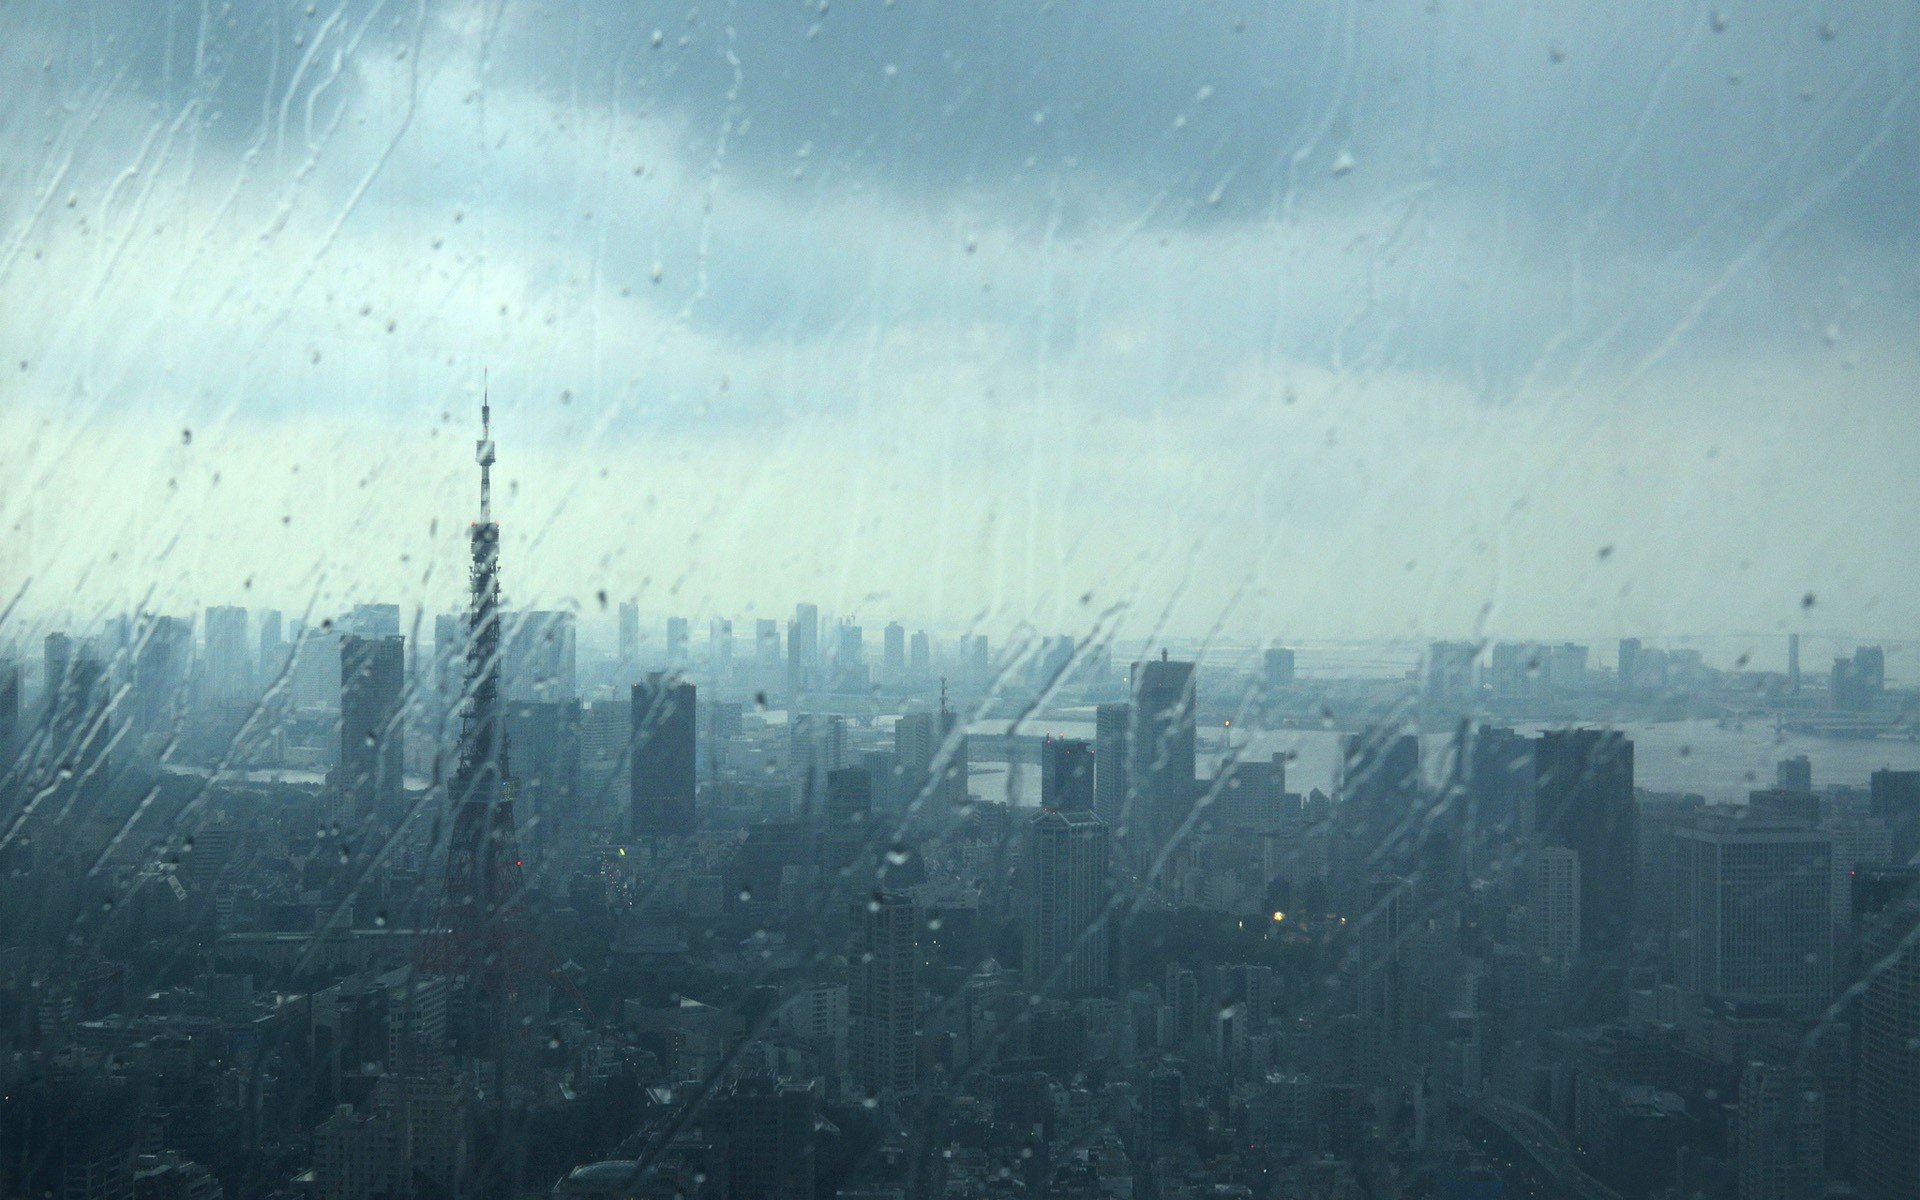 Japan Tokyo cityscapes urban water drops Tokyo Tower rain on glass 1920x1200